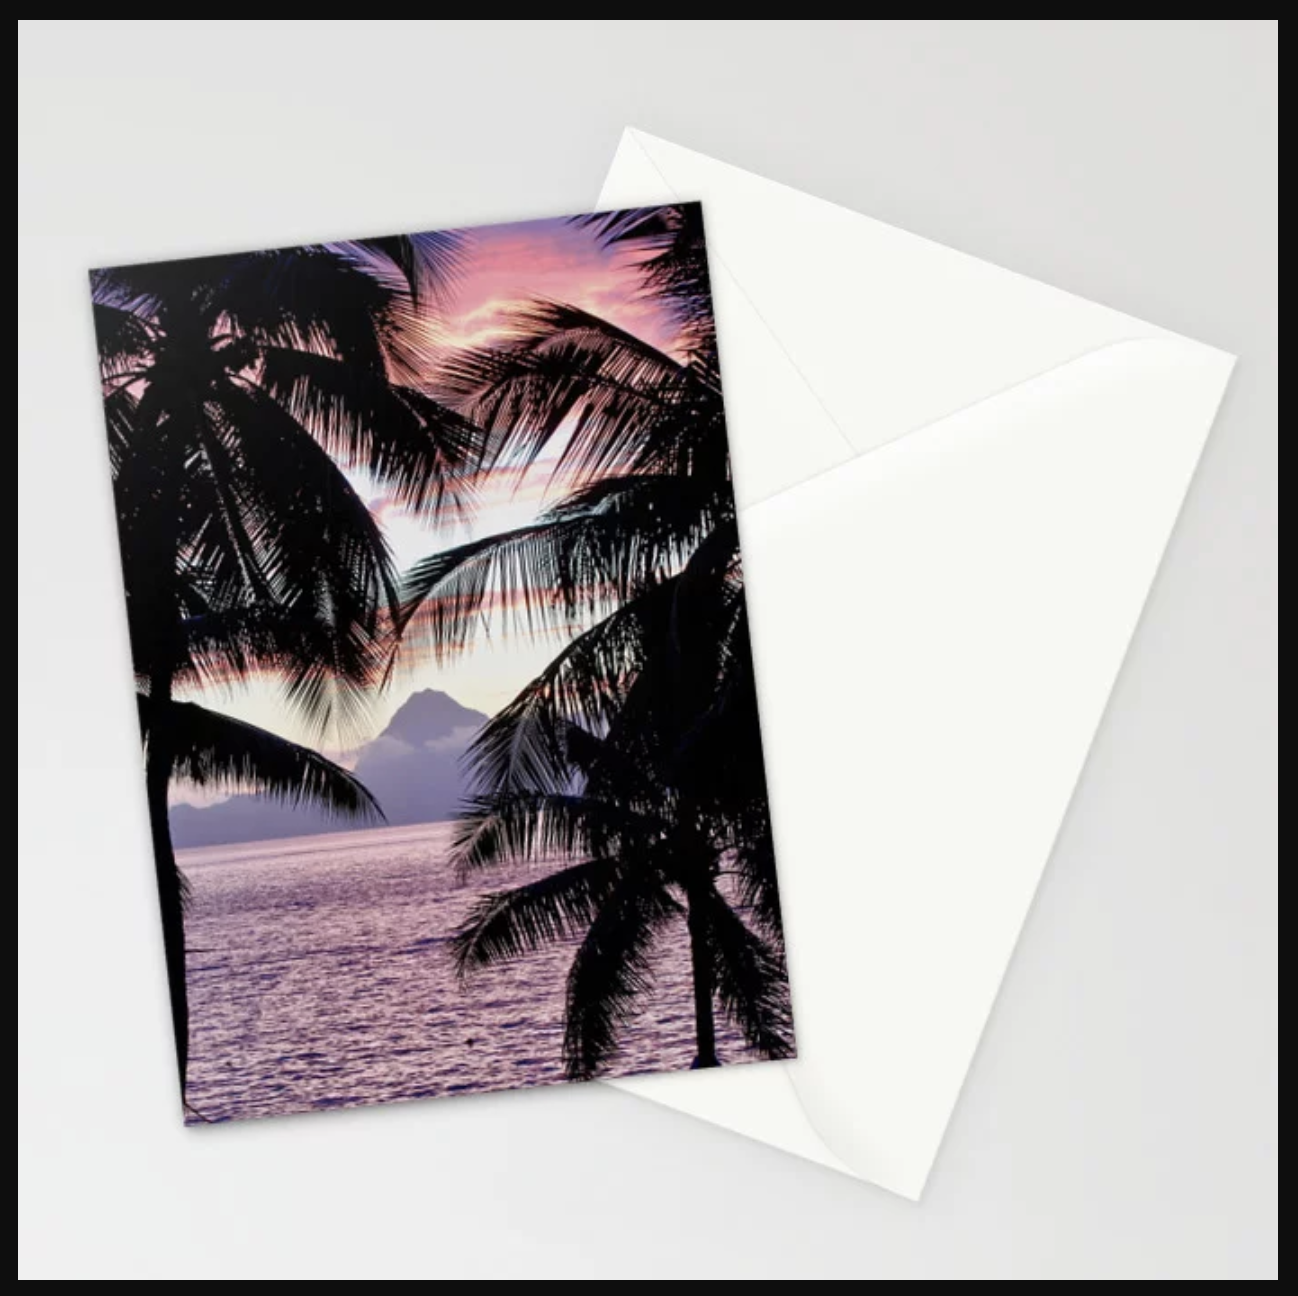 Pink Tahiti Sunset Over Moorea Stationery Cards, Prints and More by    Ryyoung